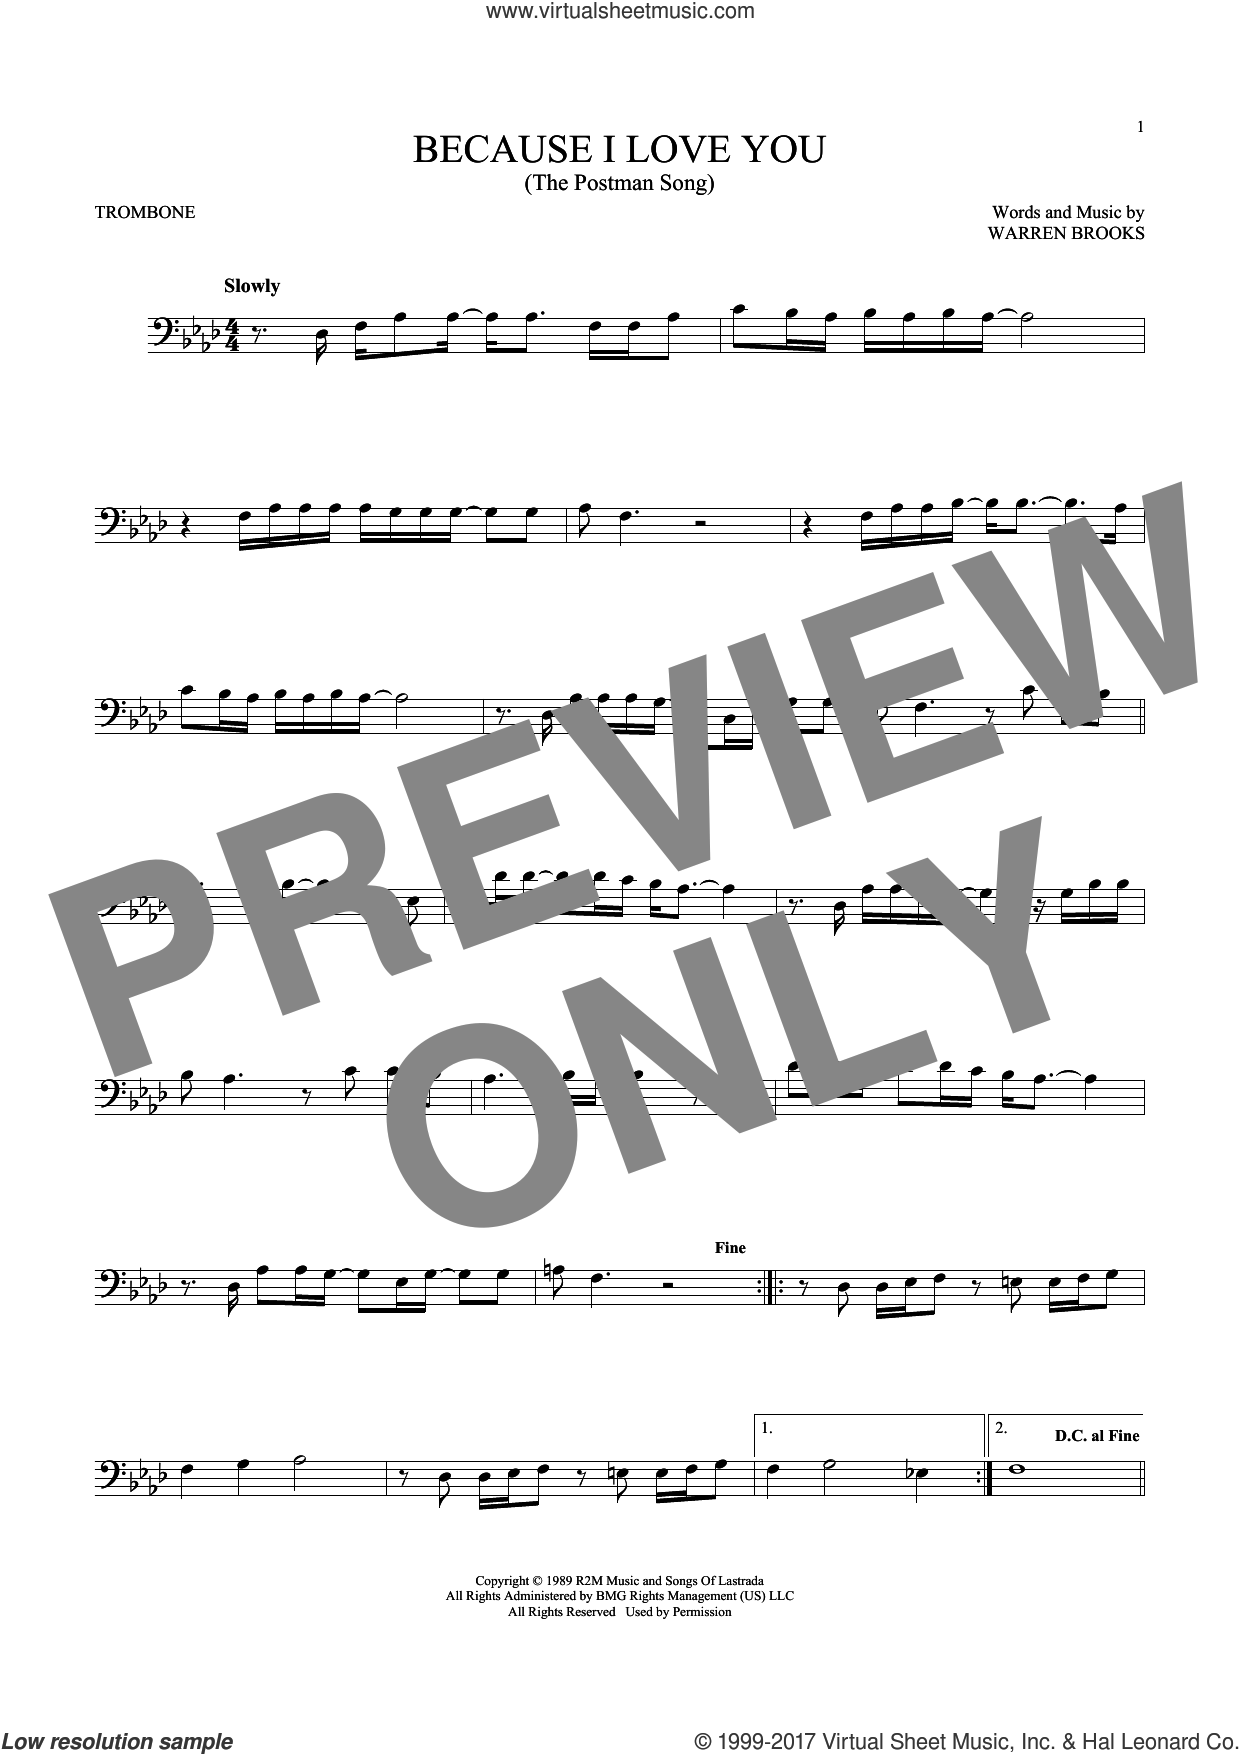 Because I Love You (The Postman Song) sheet music for trombone solo by Stevie B and Warren Brooks, intermediate skill level